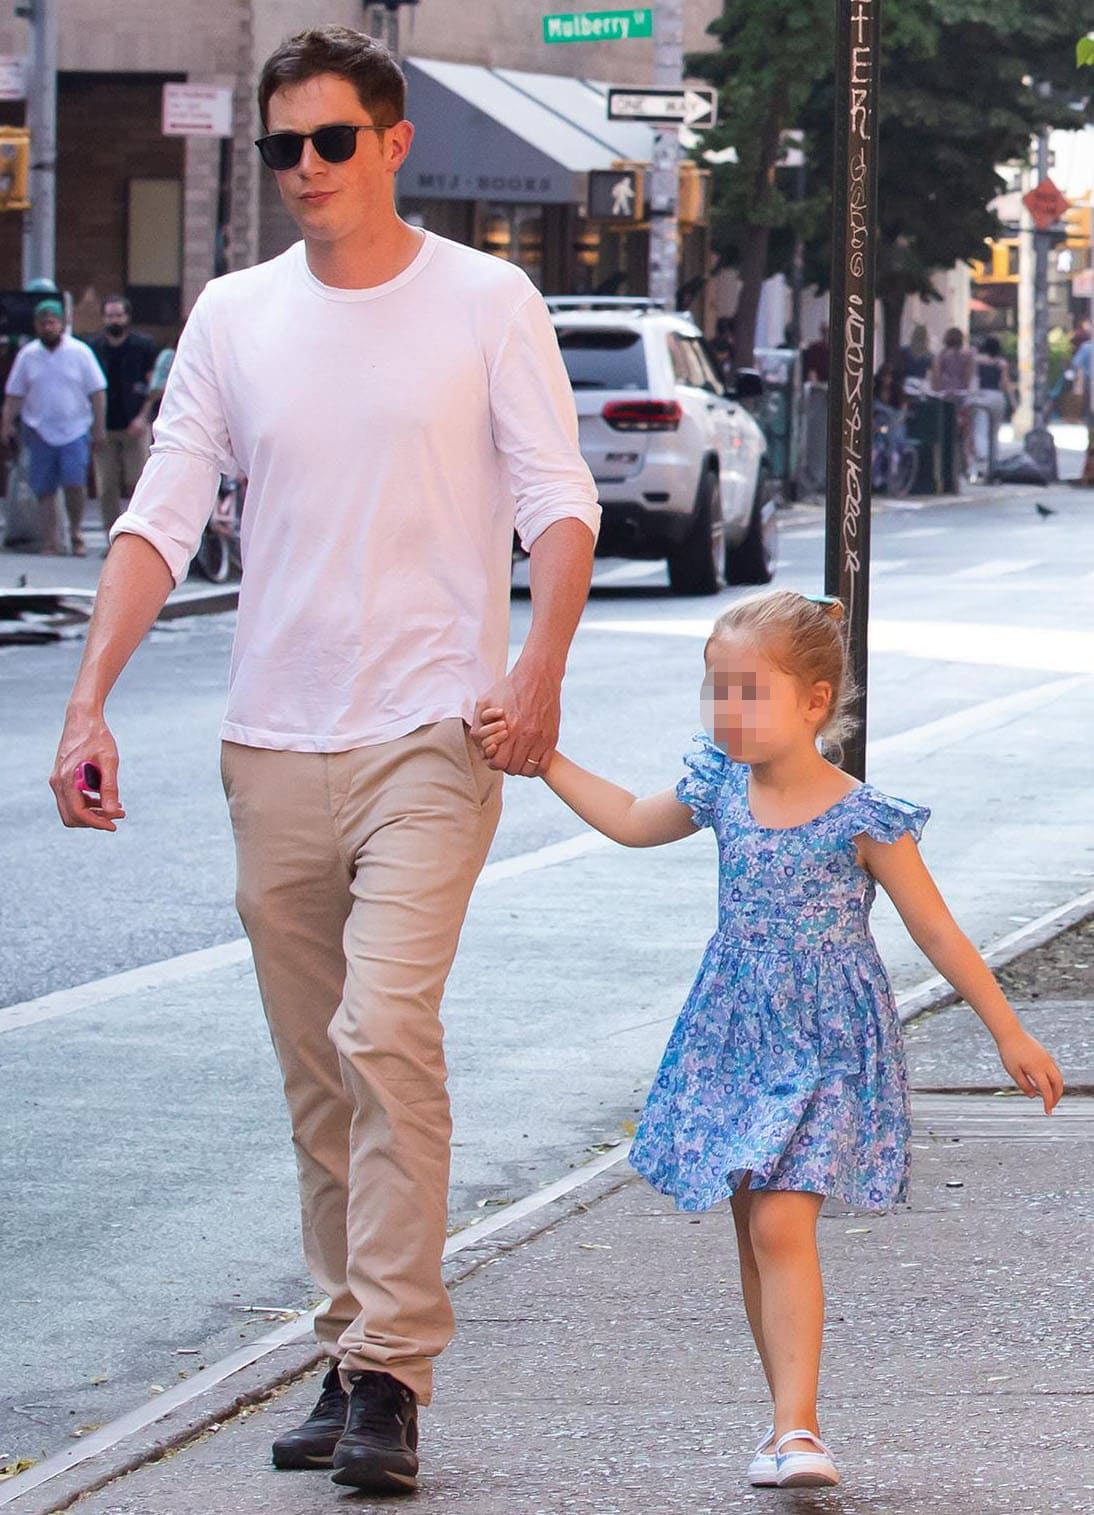 James Rothschild keeps it simple in white tee and khaki pants combo as he holds hands with daughter Lily Grace in floral blue dress and matching shoes